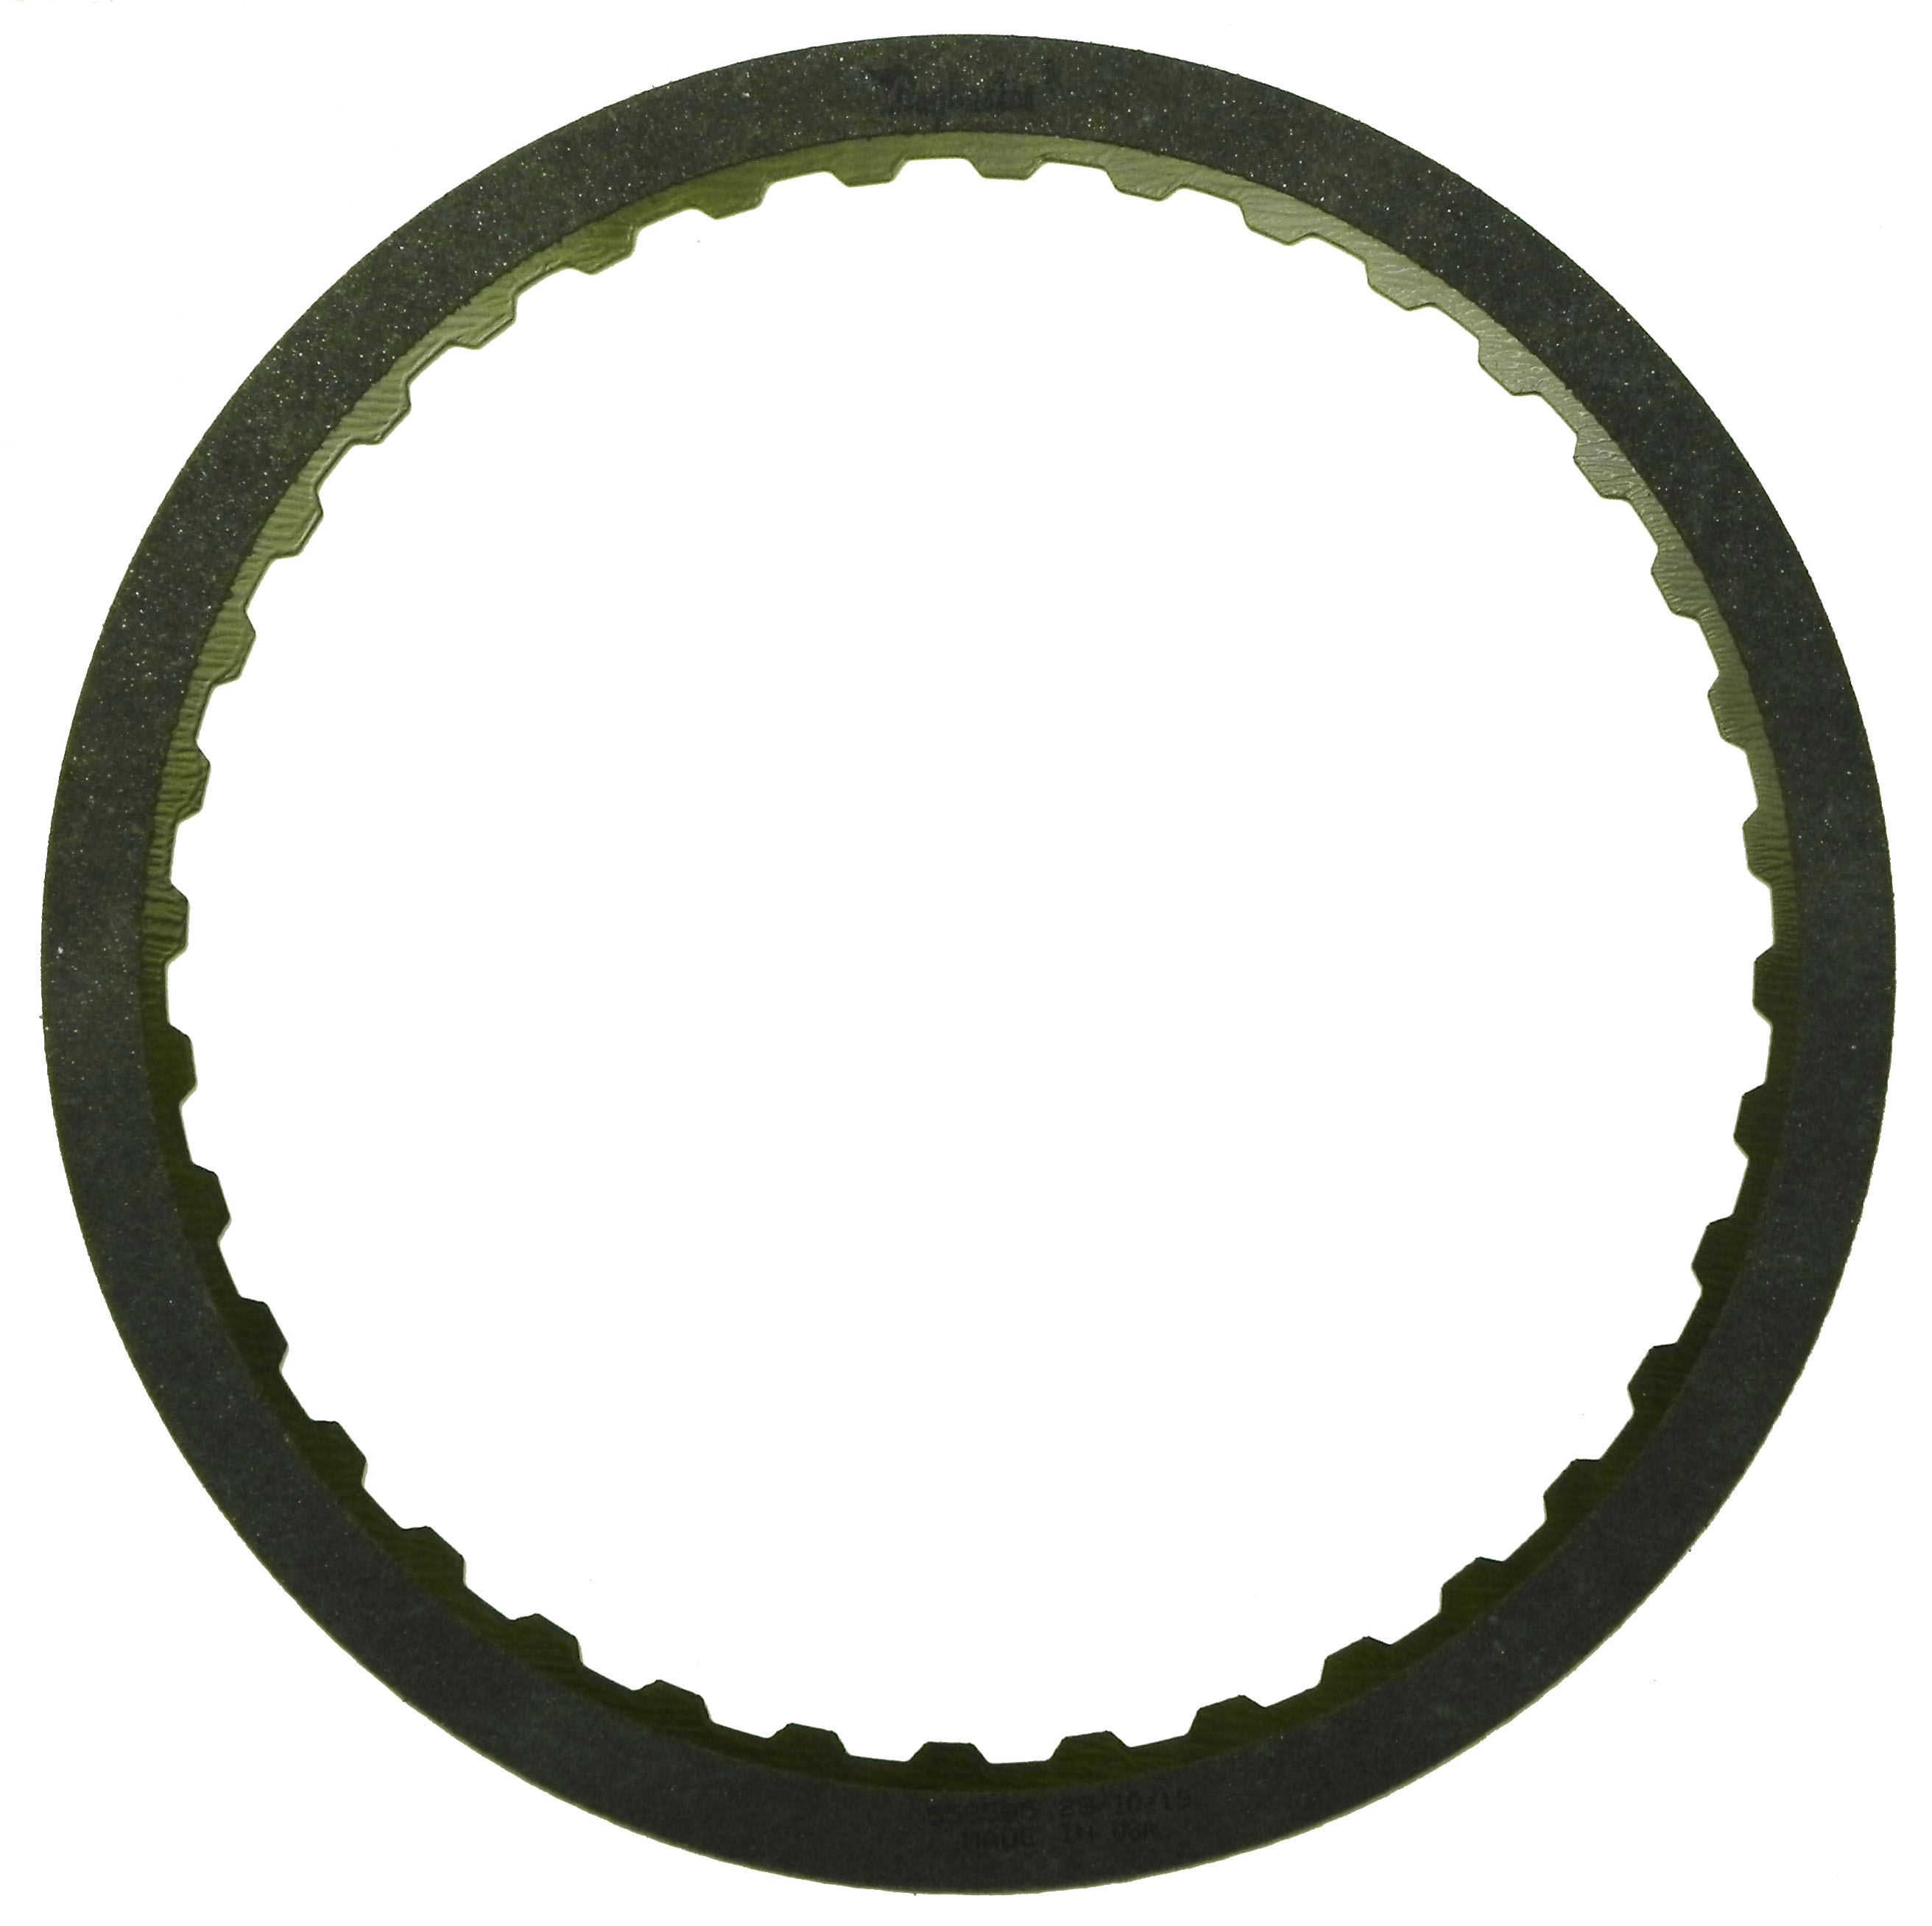 R558595 | 2012-ON Friction Clutch Plate High Energy 1, 2, 3, 4 (Waved) High Energy